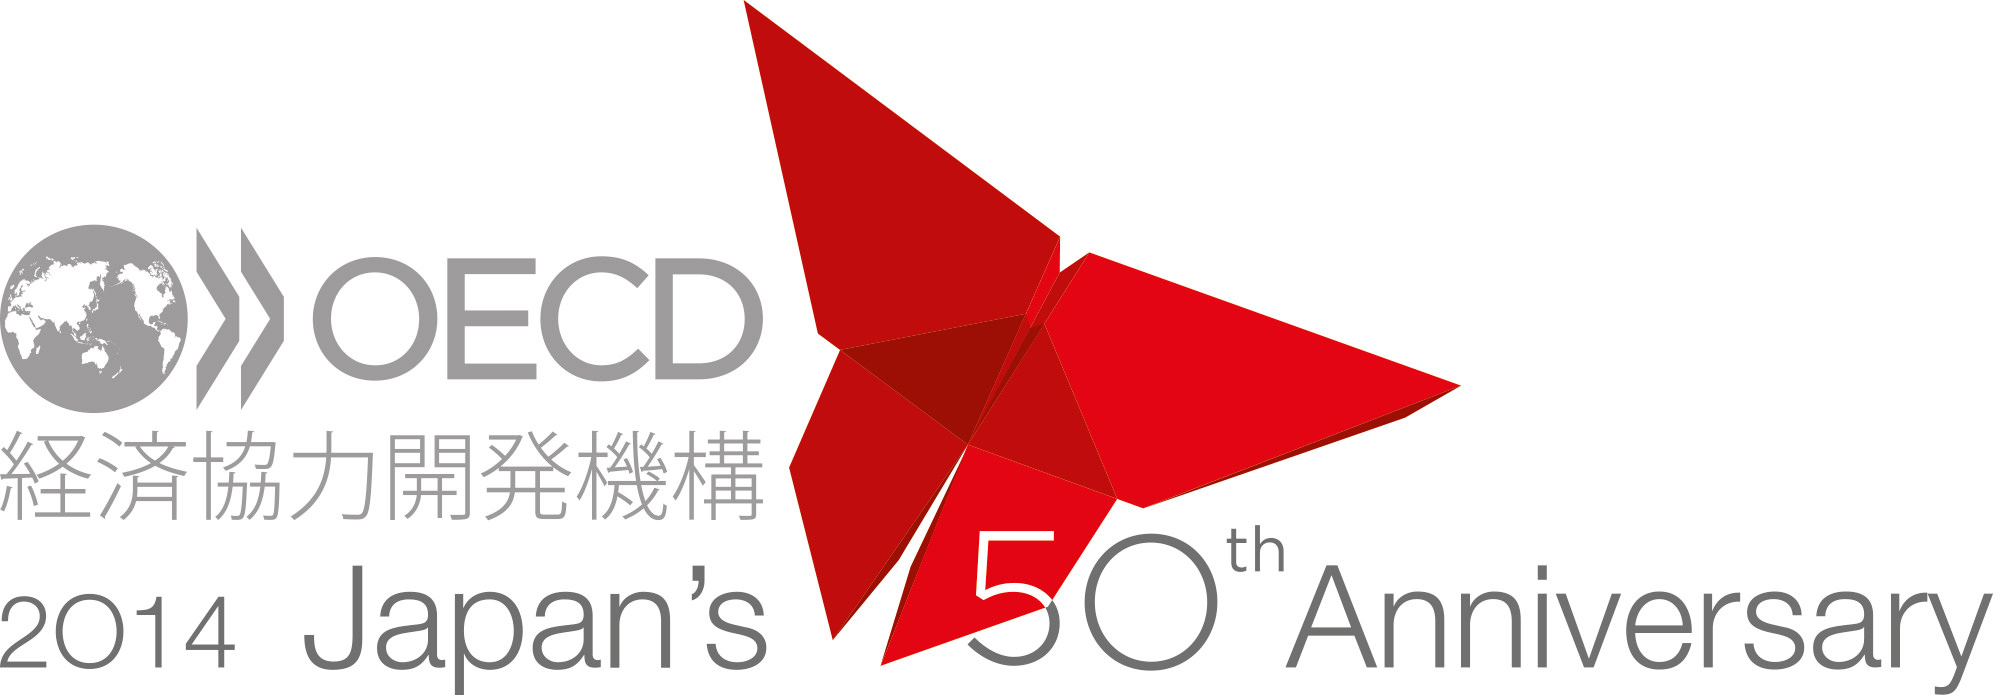 OECD 2014 Japan's 50th anniversary